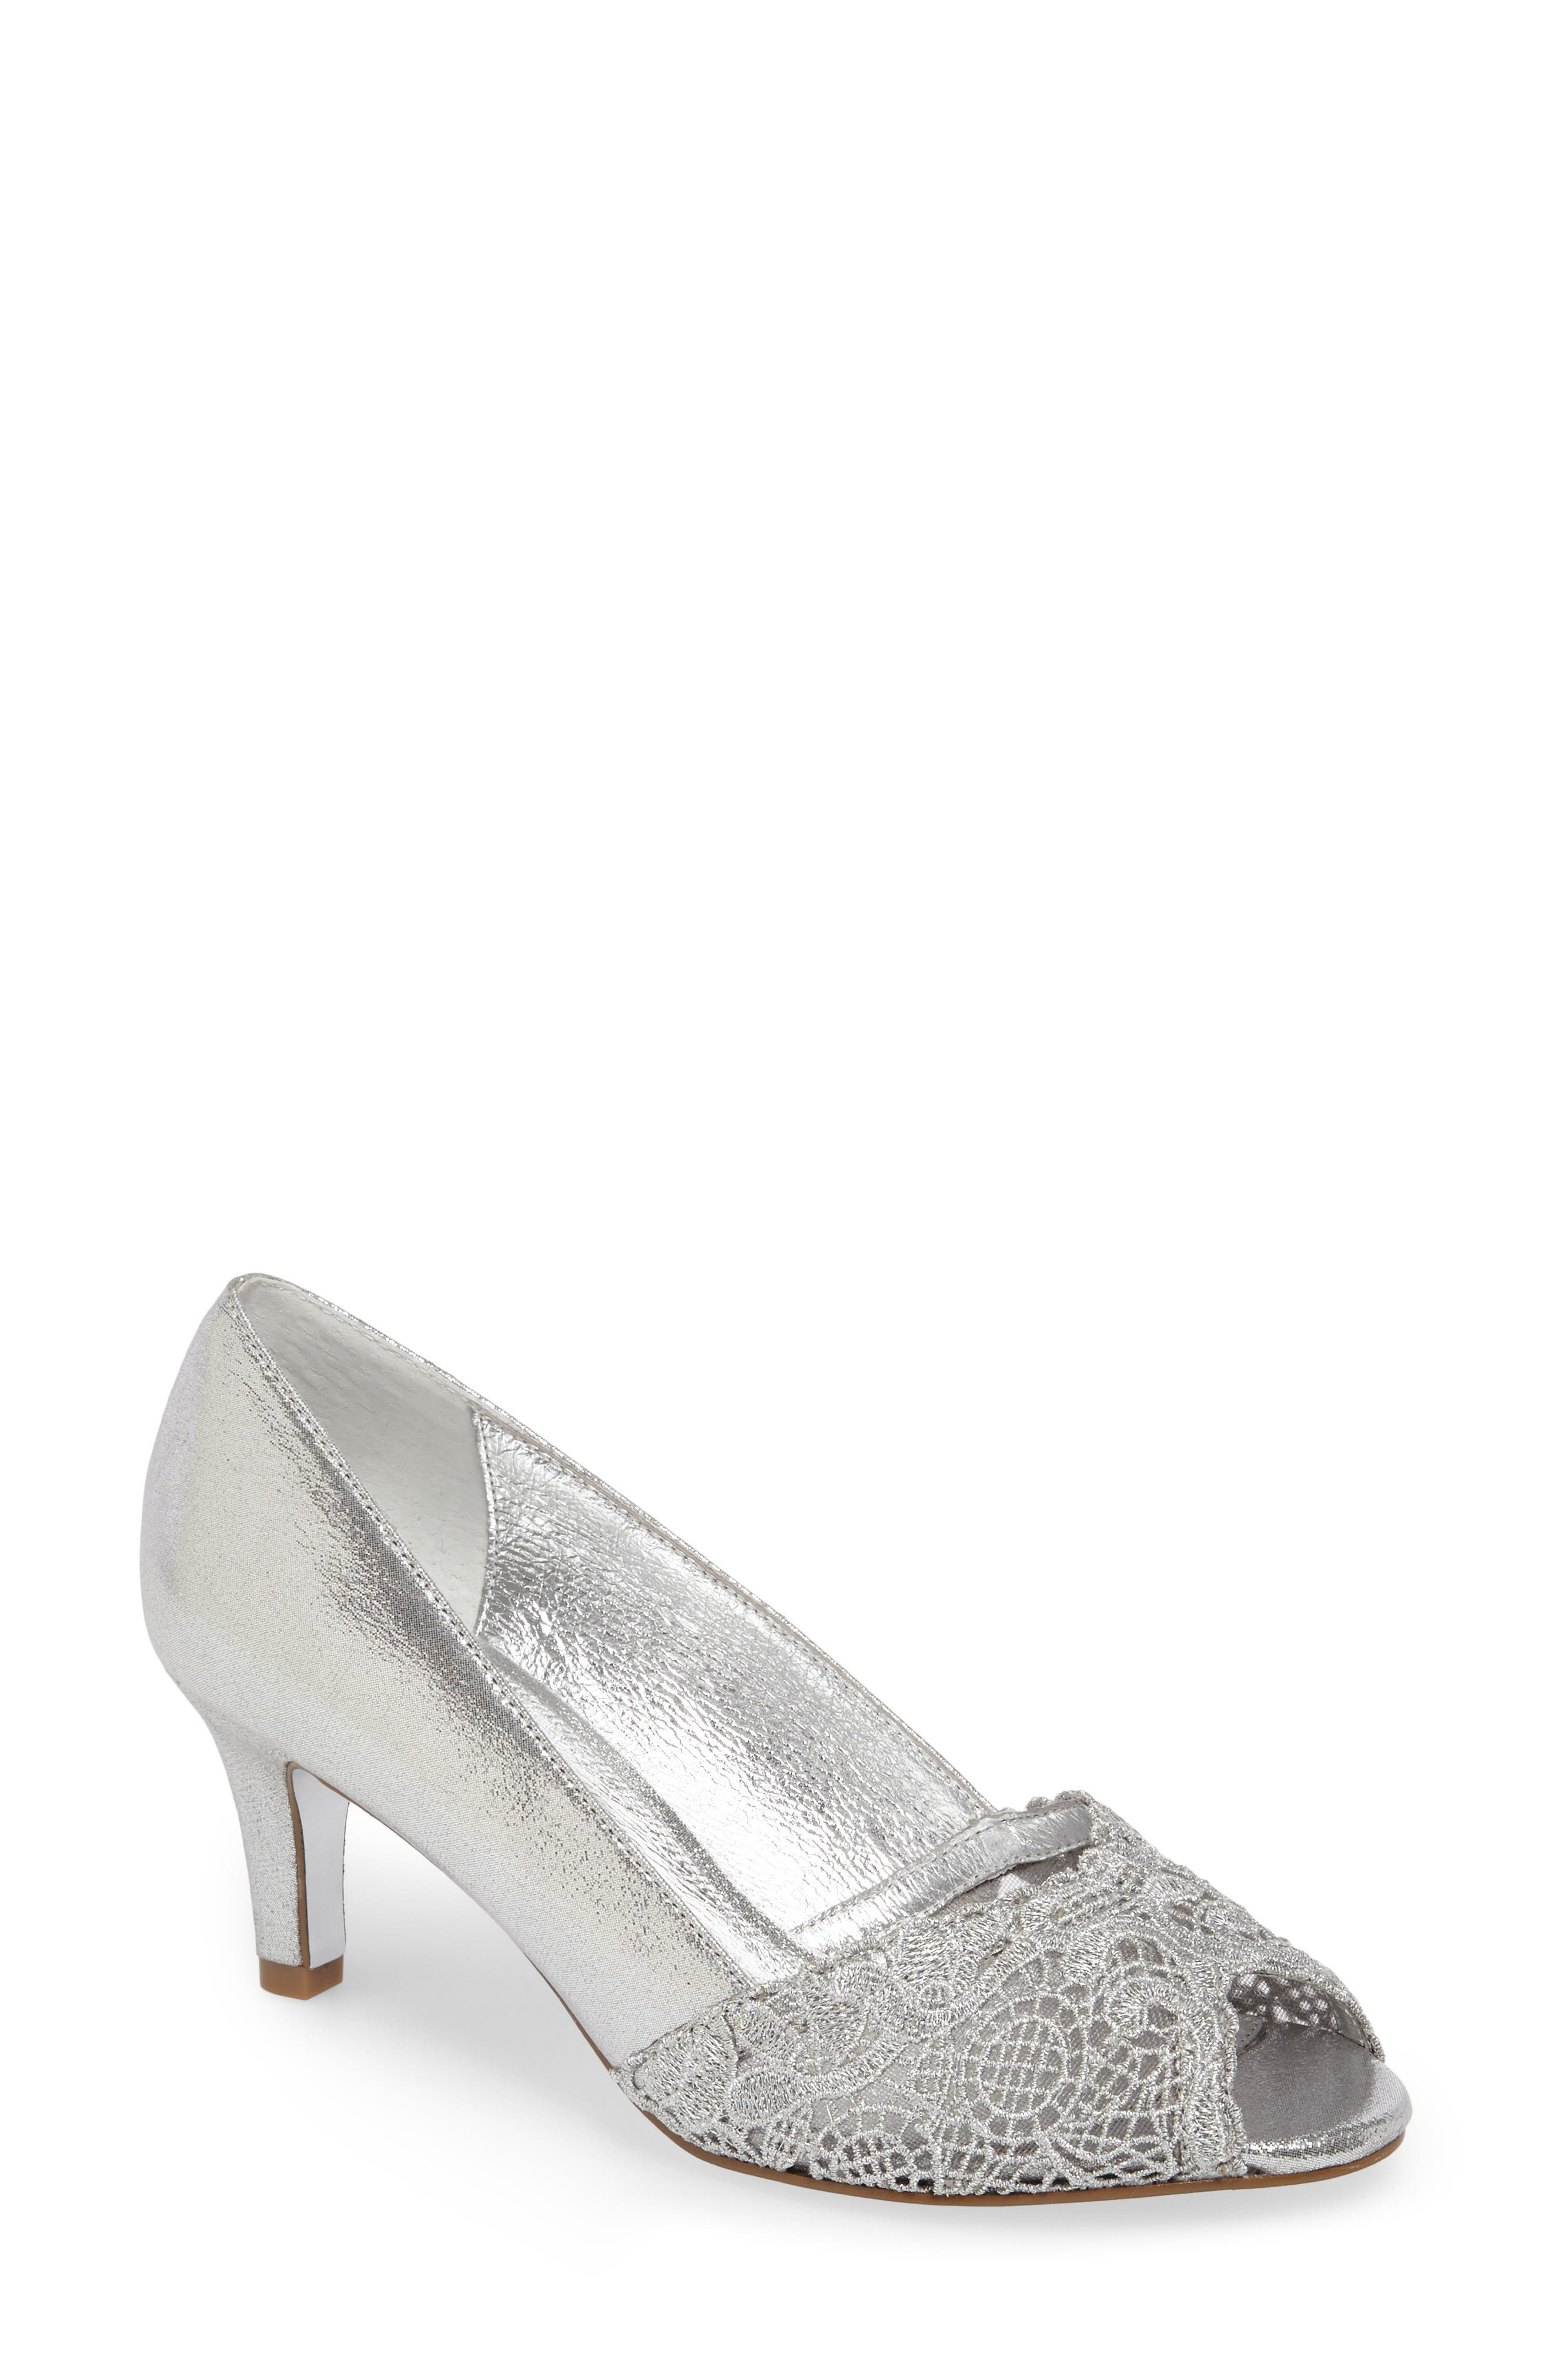 Shoes for Wedding